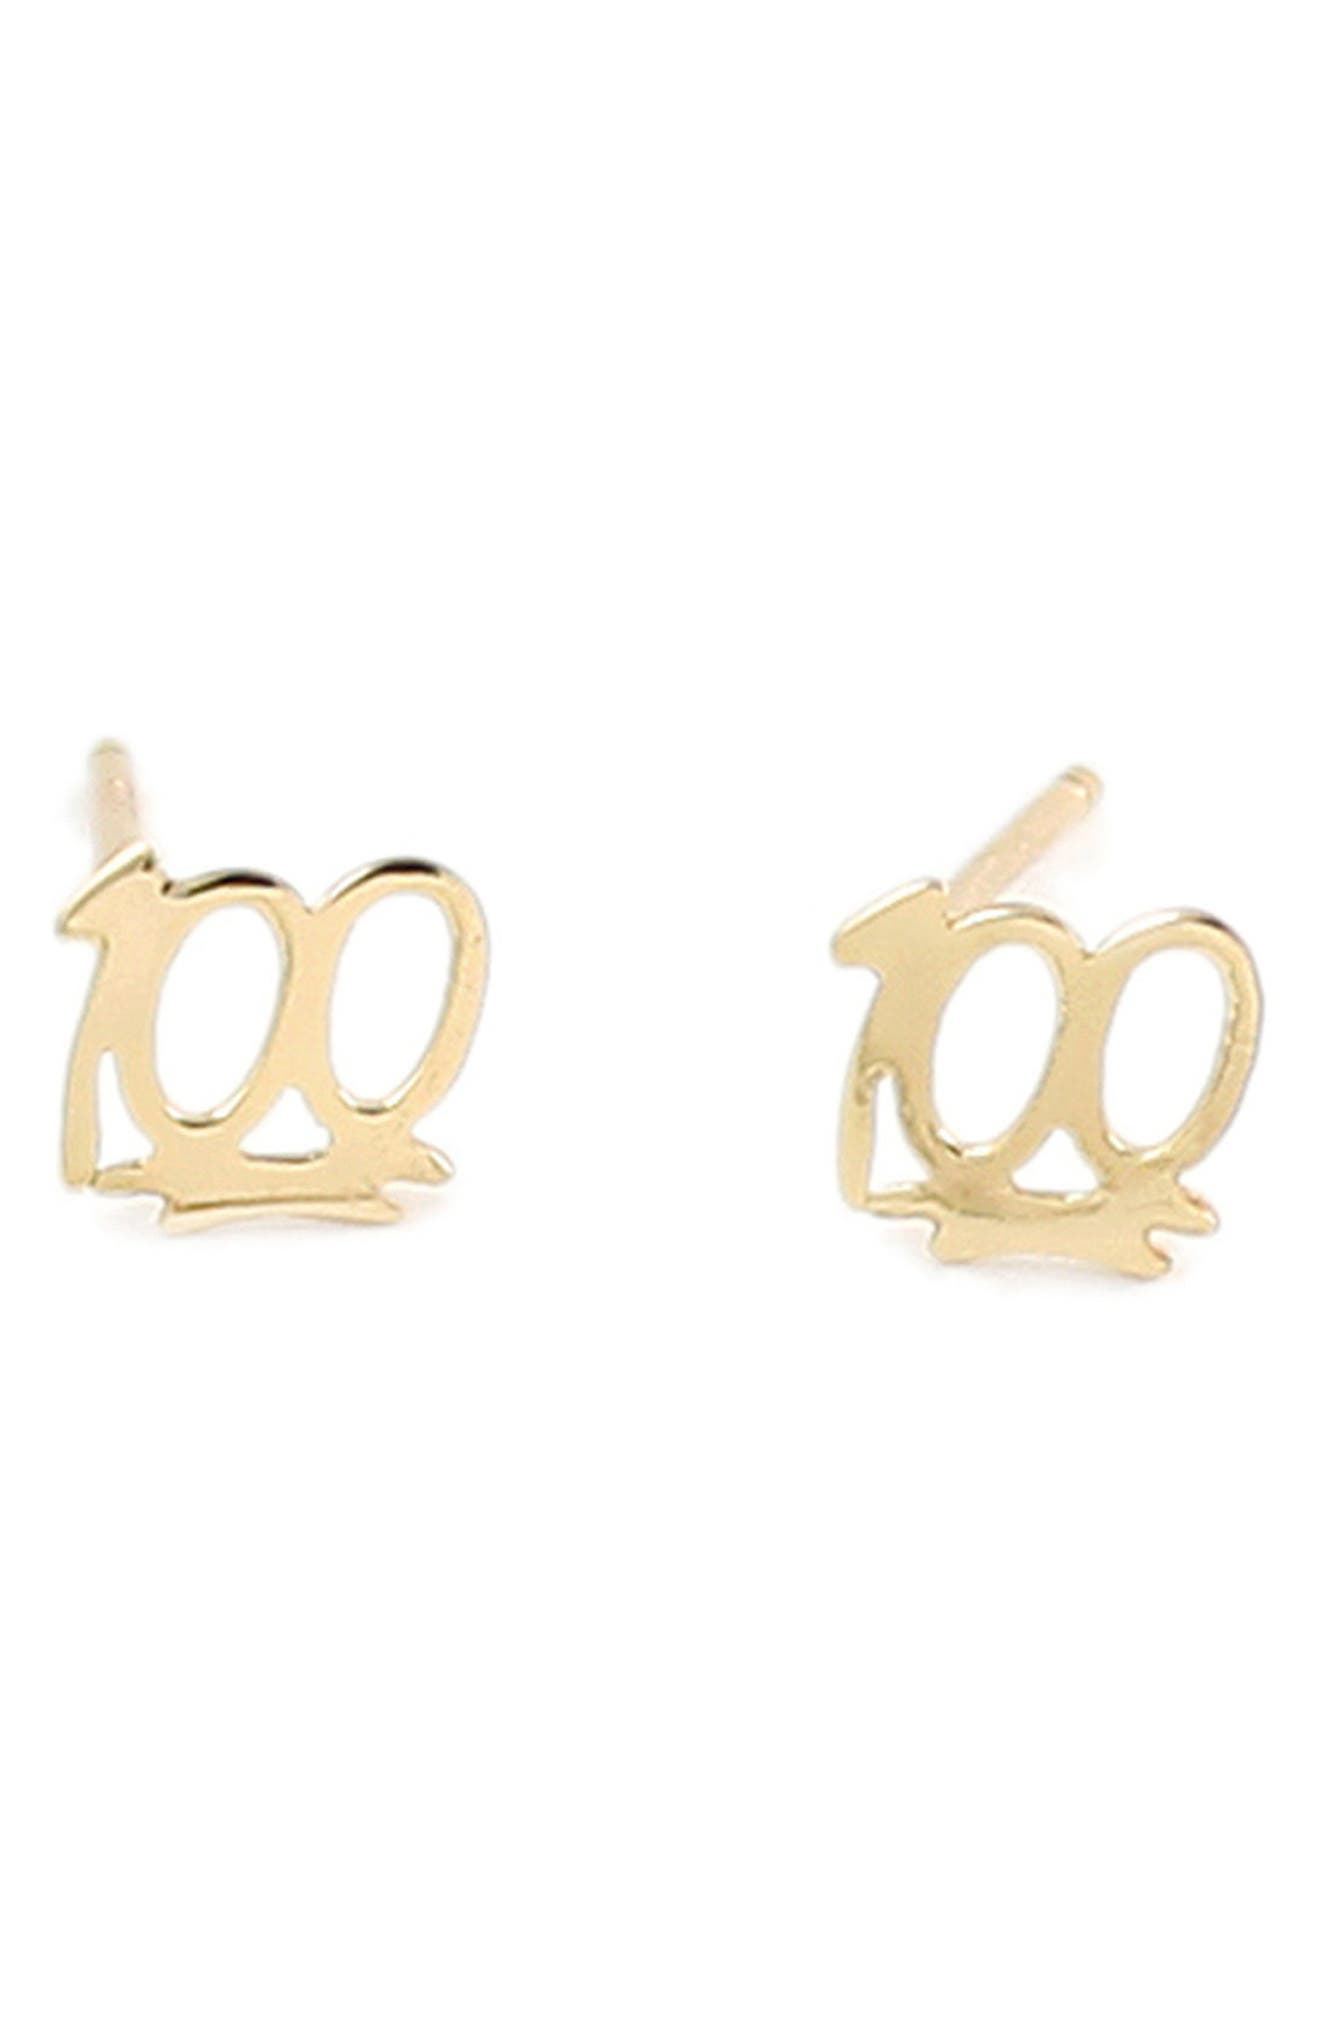 100 Stud Earrings,                             Main thumbnail 1, color,                             Gold